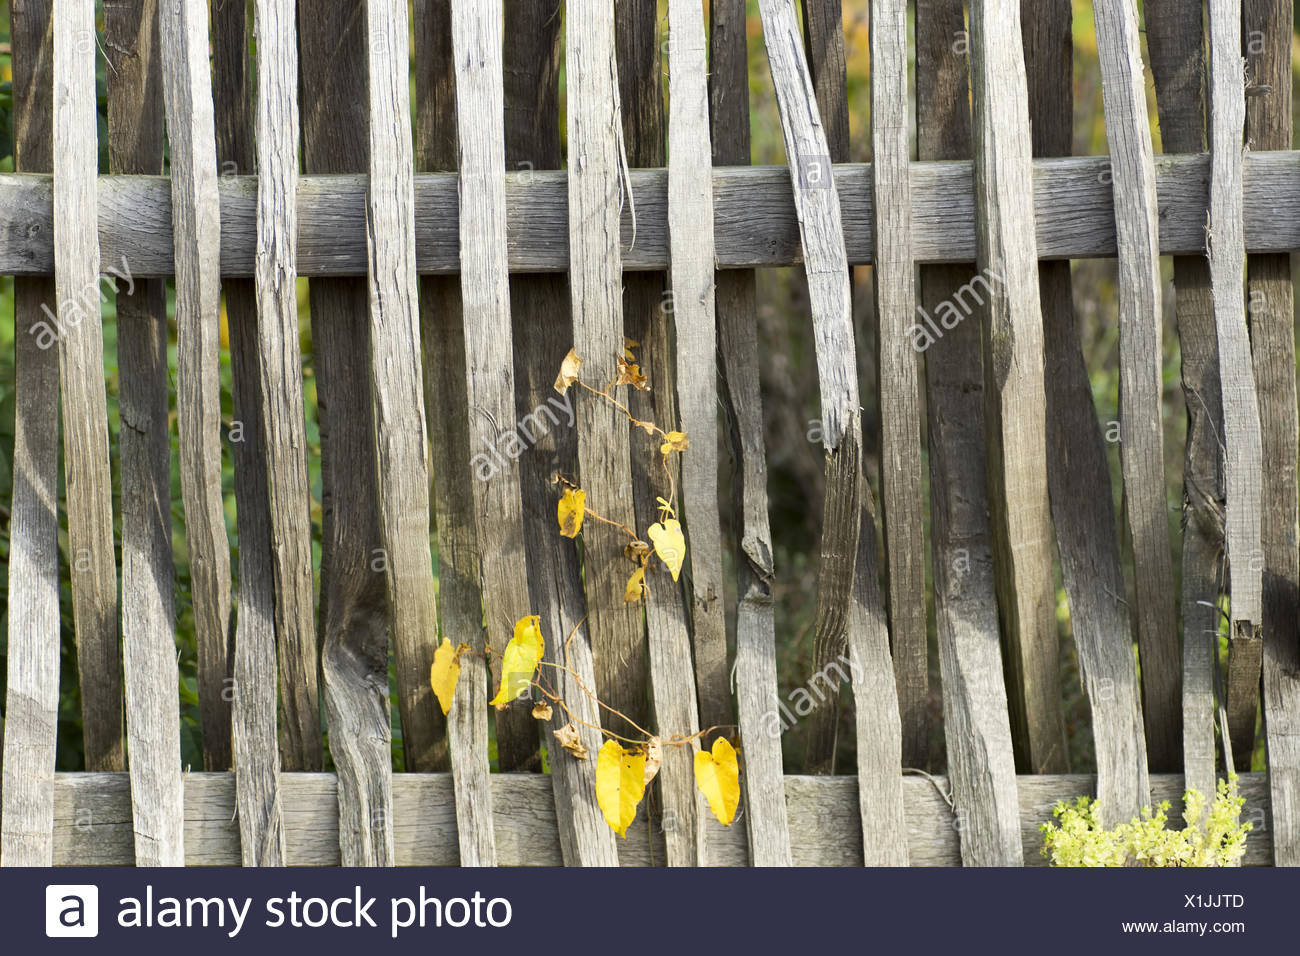 Braides batten fence Stock Photo